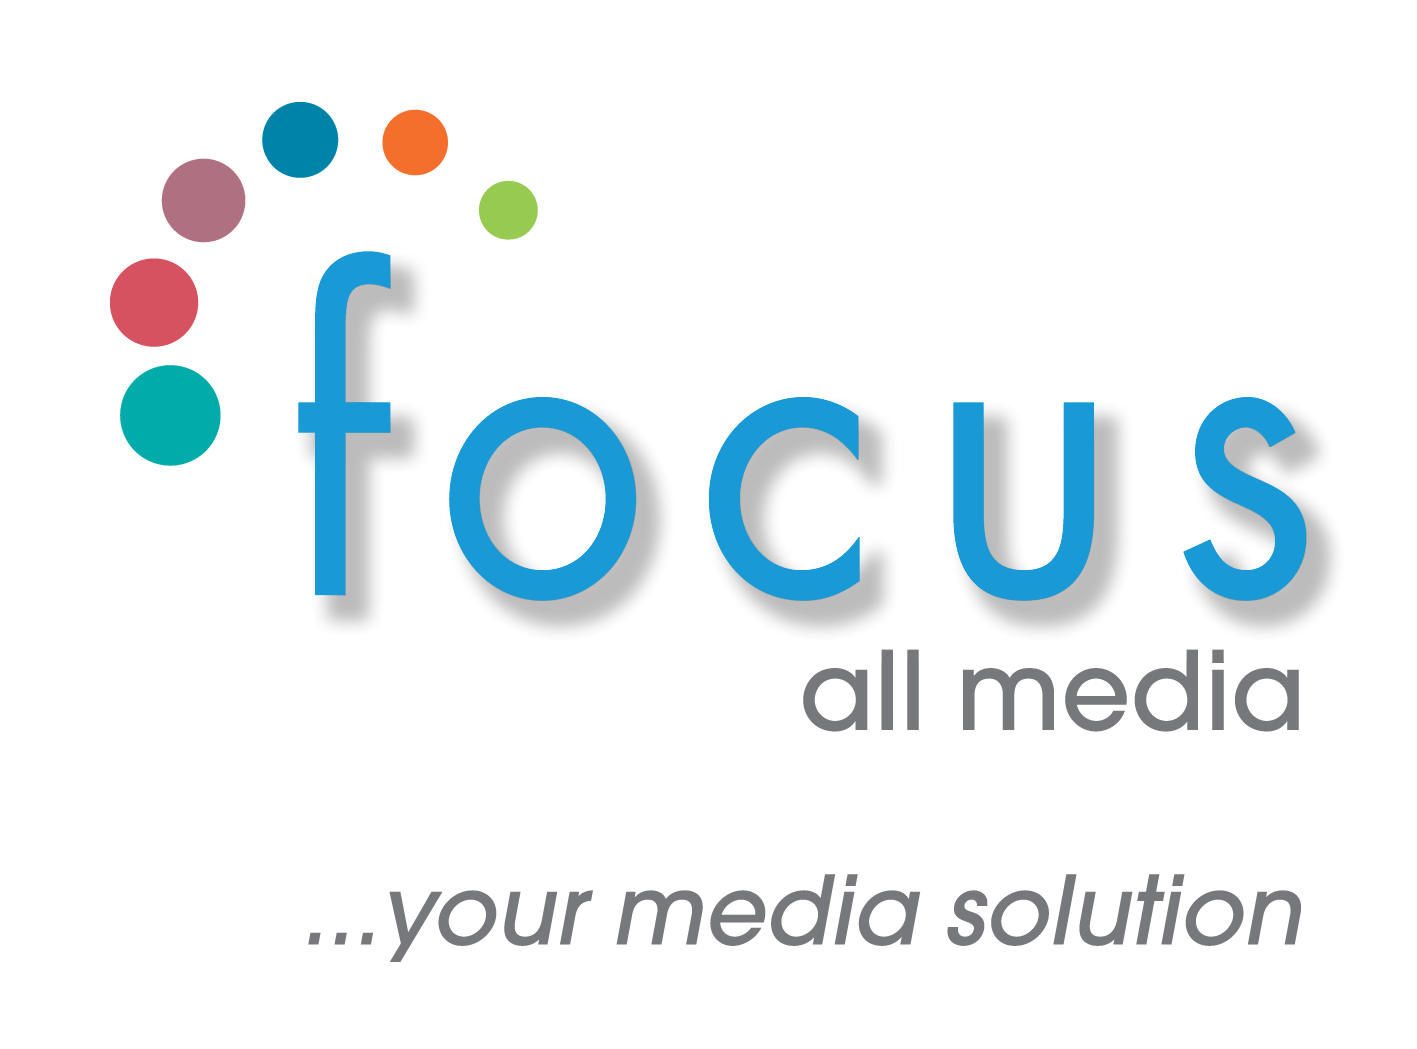 Focus all media in derbyshire and easy sussex logo